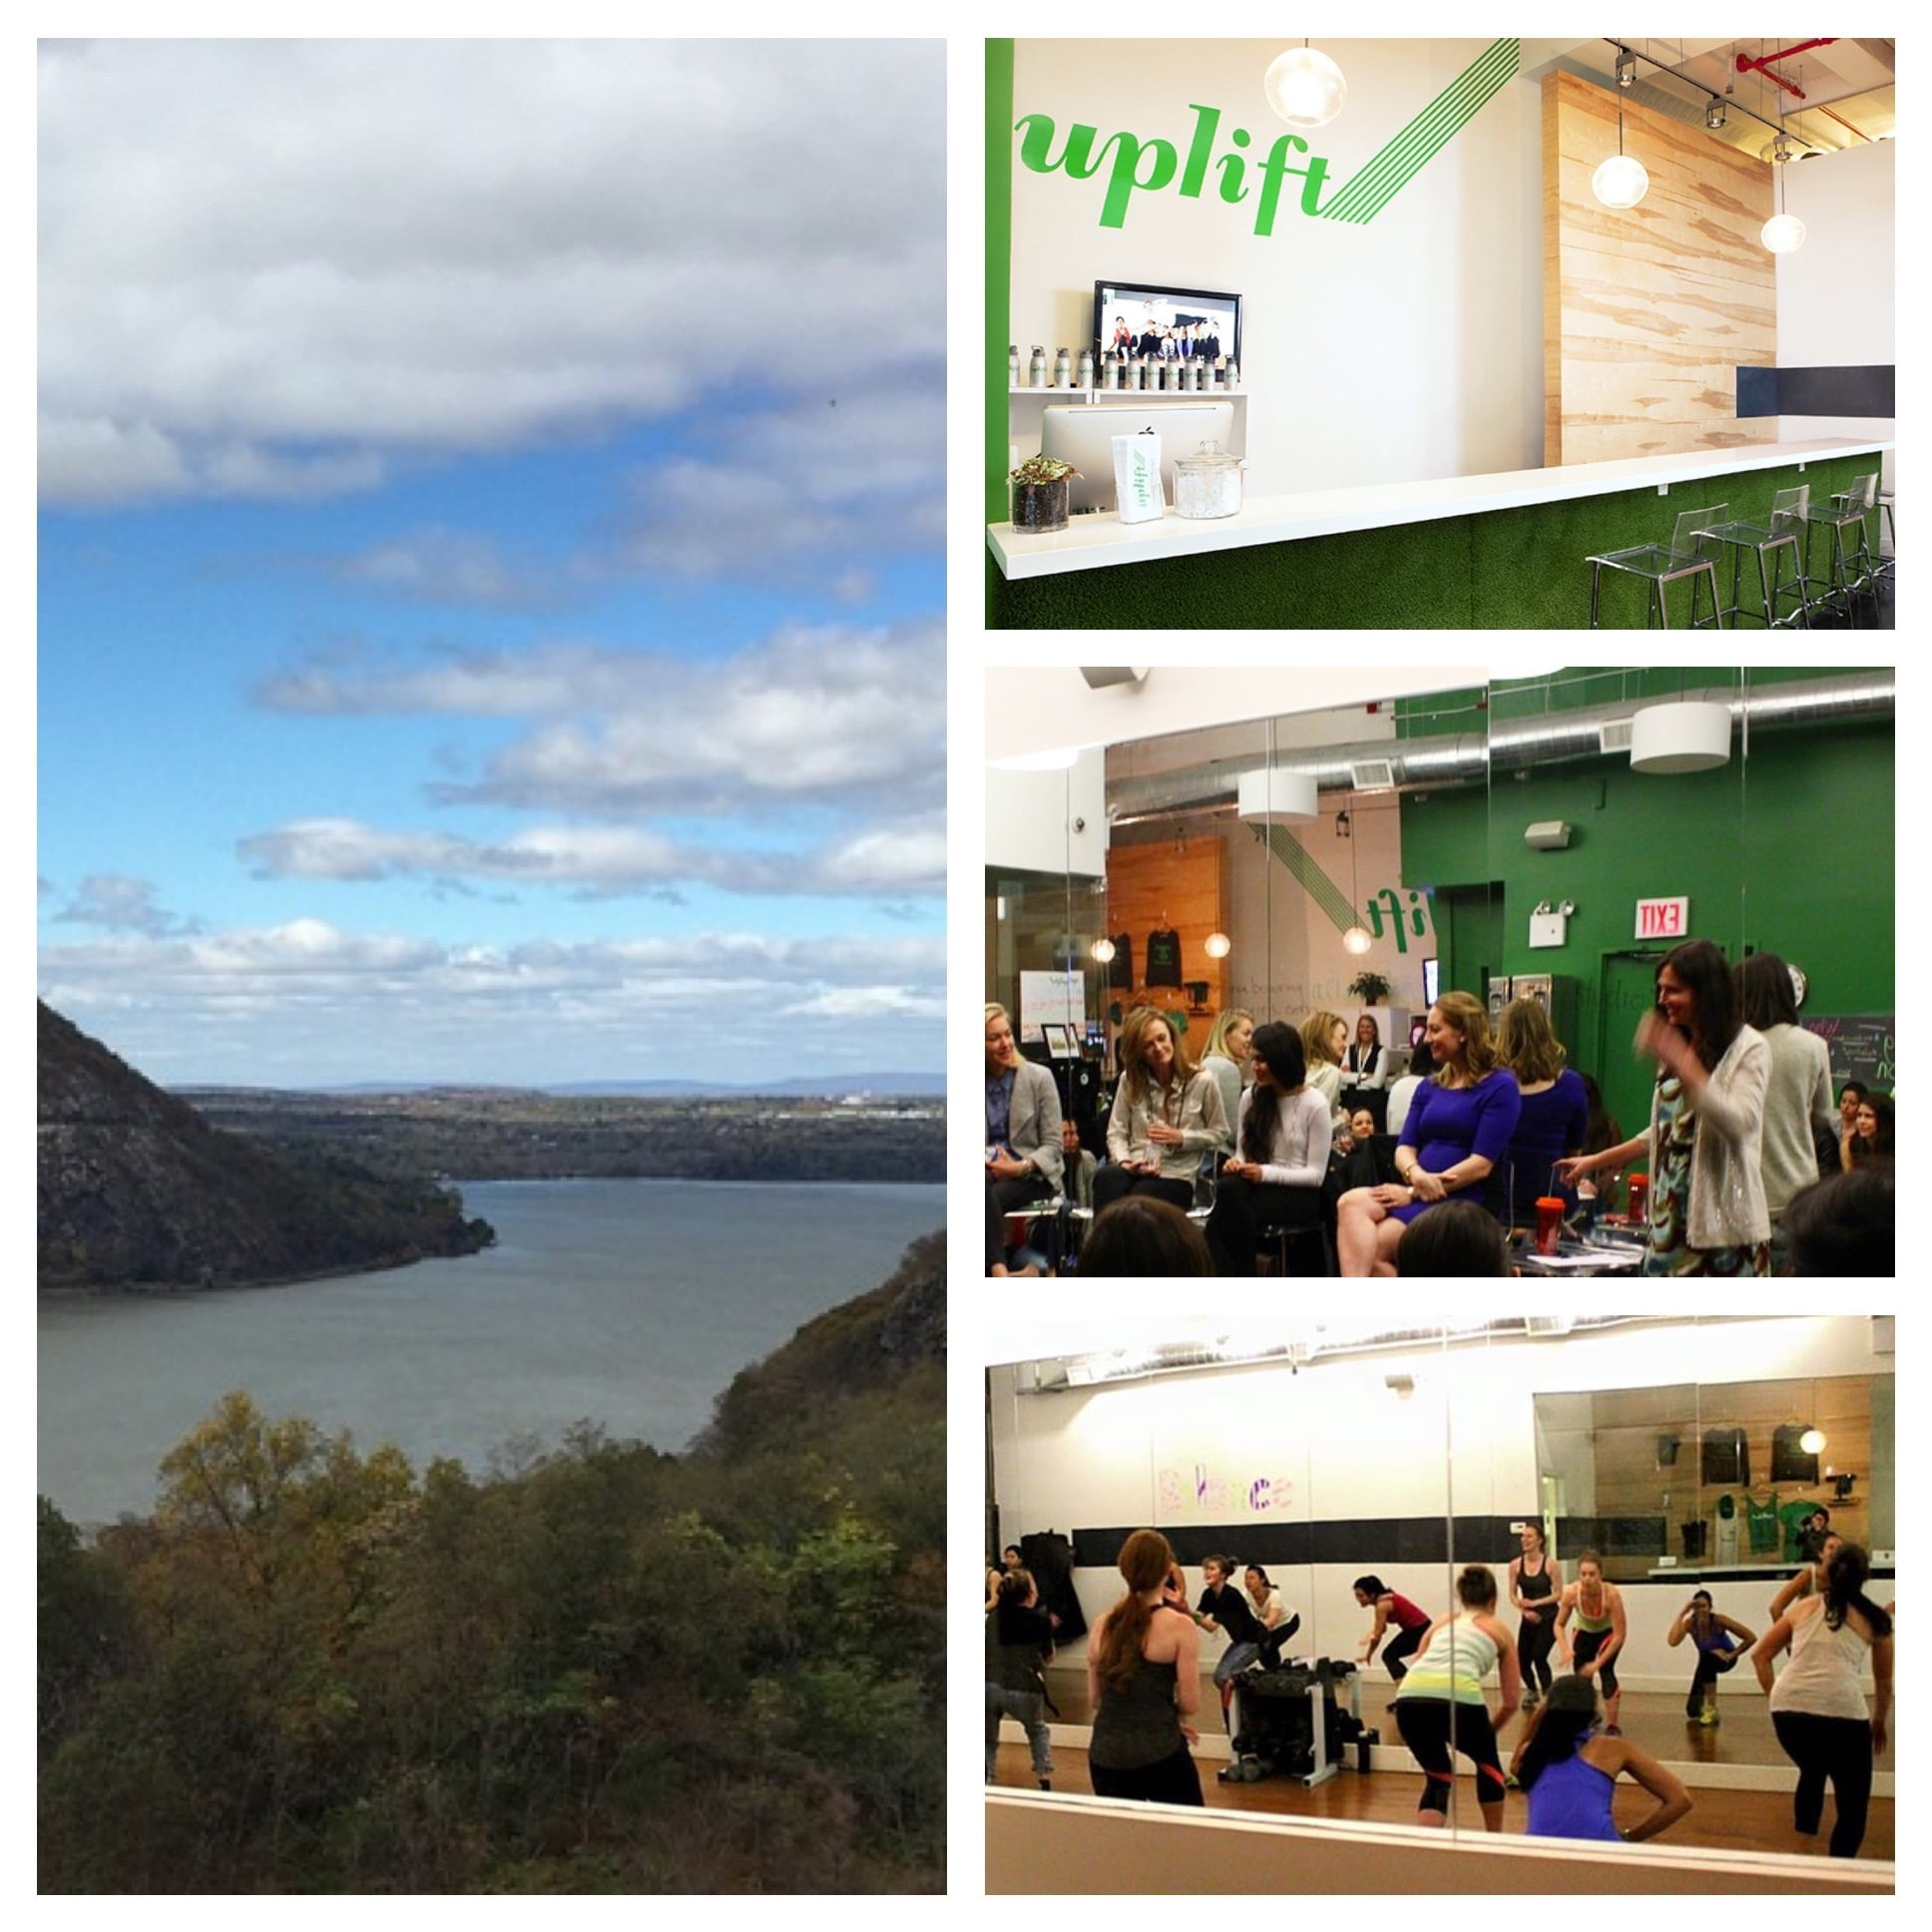 Left: View from our hike. Right: Photos from Uplift's website and Facebook page (top to bottom: bar/check in area, photo from the panel I attended in the personal training area, shot of a class in the group fitness studio).